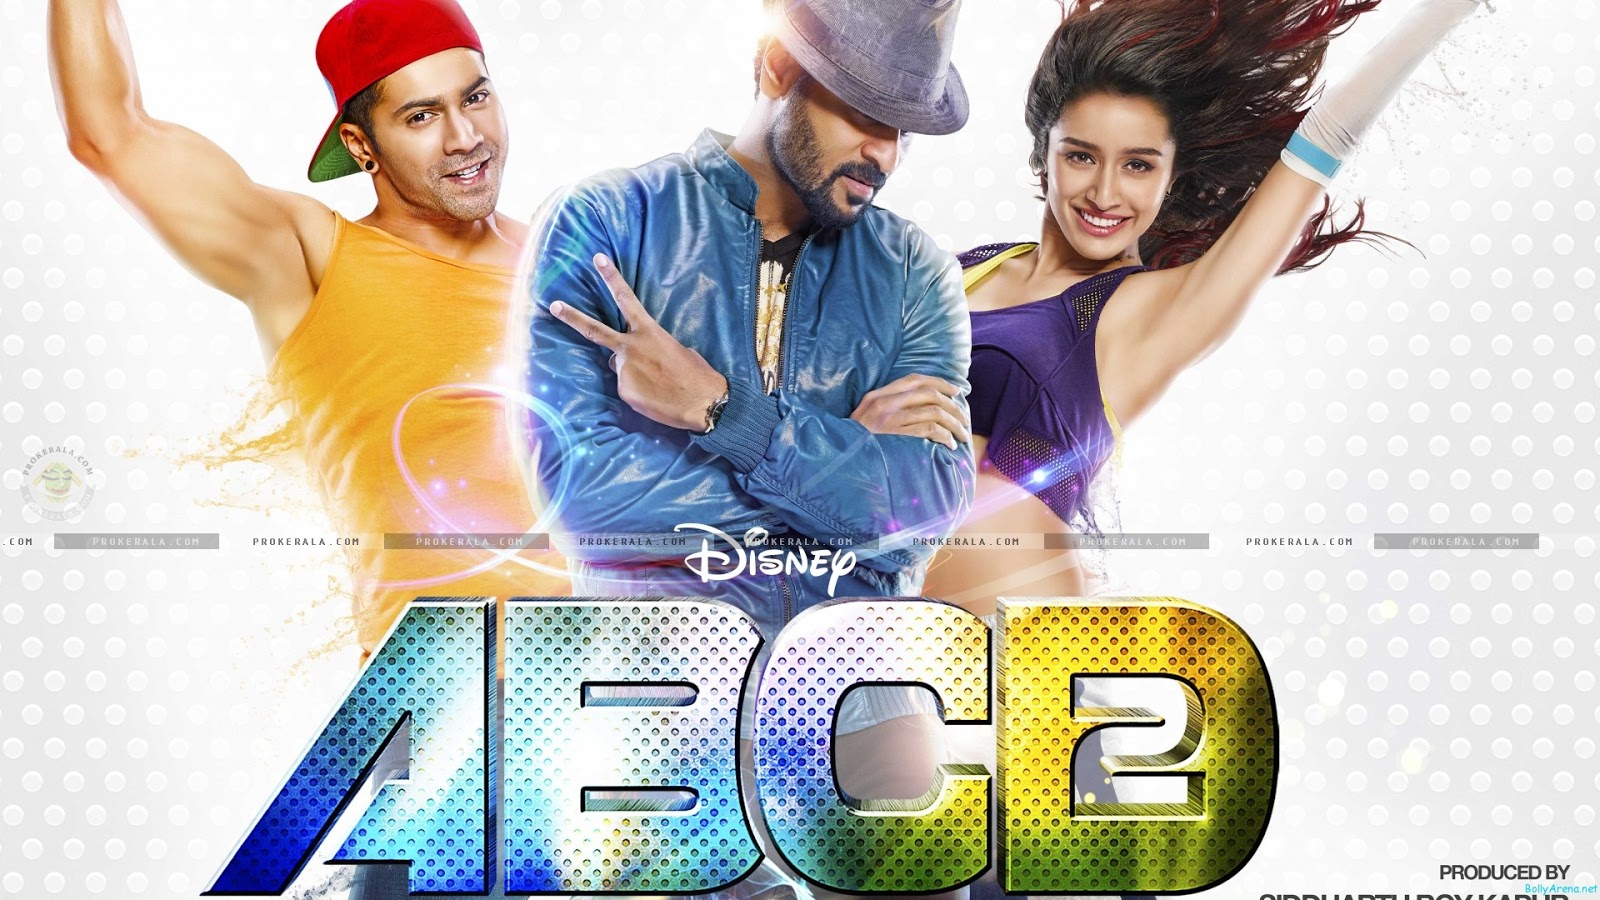 ABCD DANCE CAN TÉLÉCHARGER FILM COMPLET ANYBODY